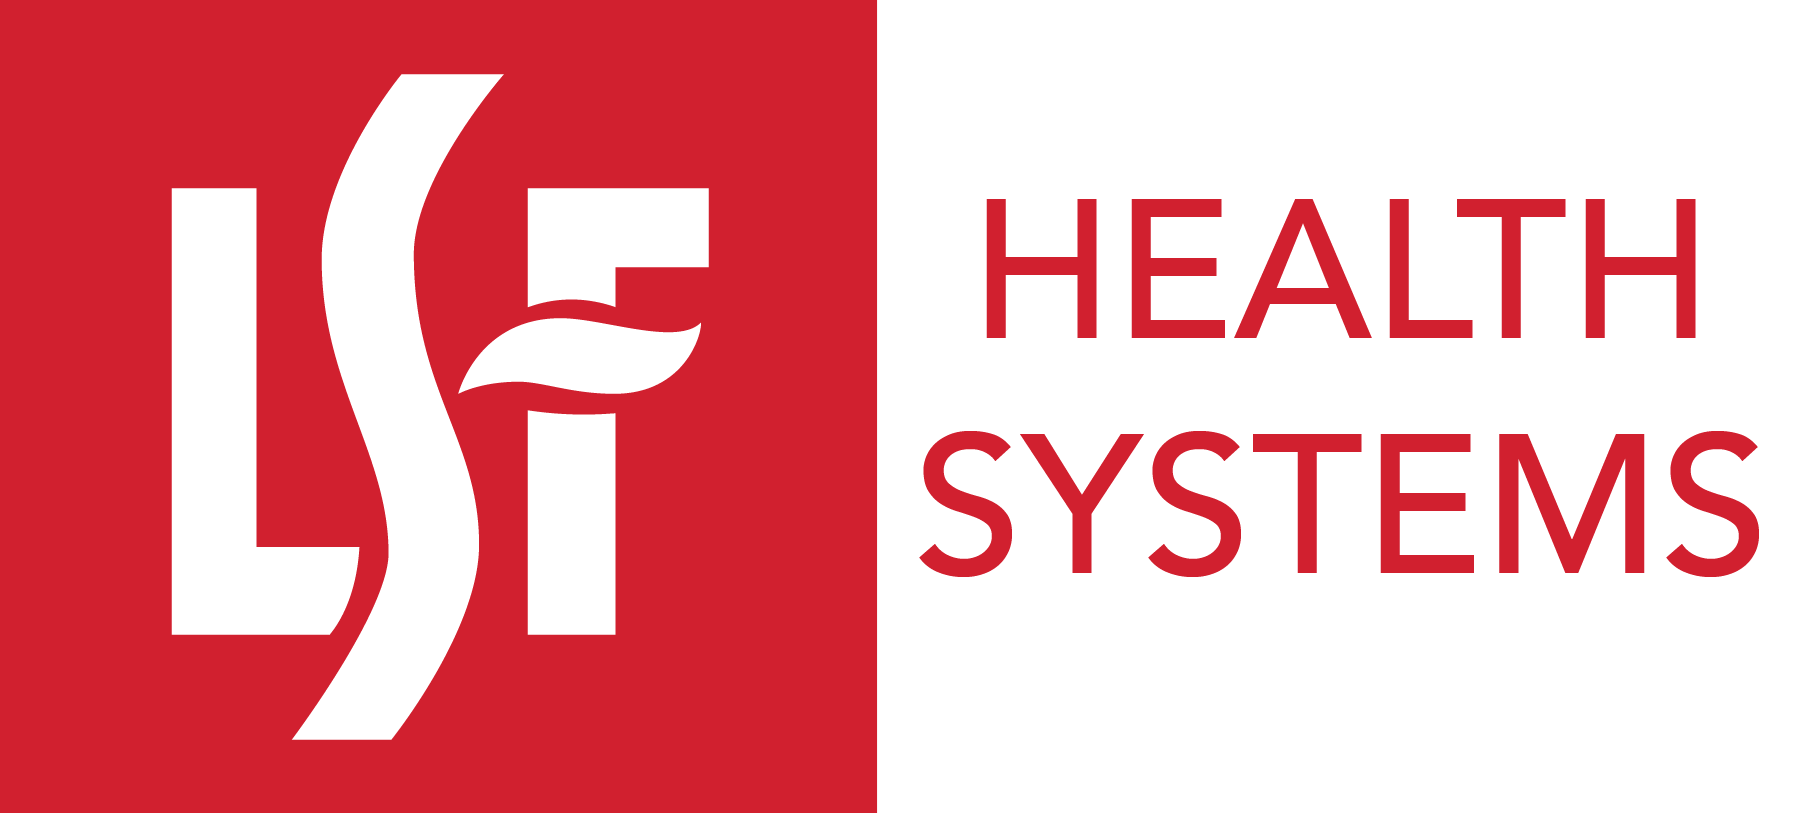 LSF-Health-Systems-Logo_Red_Sticky-01